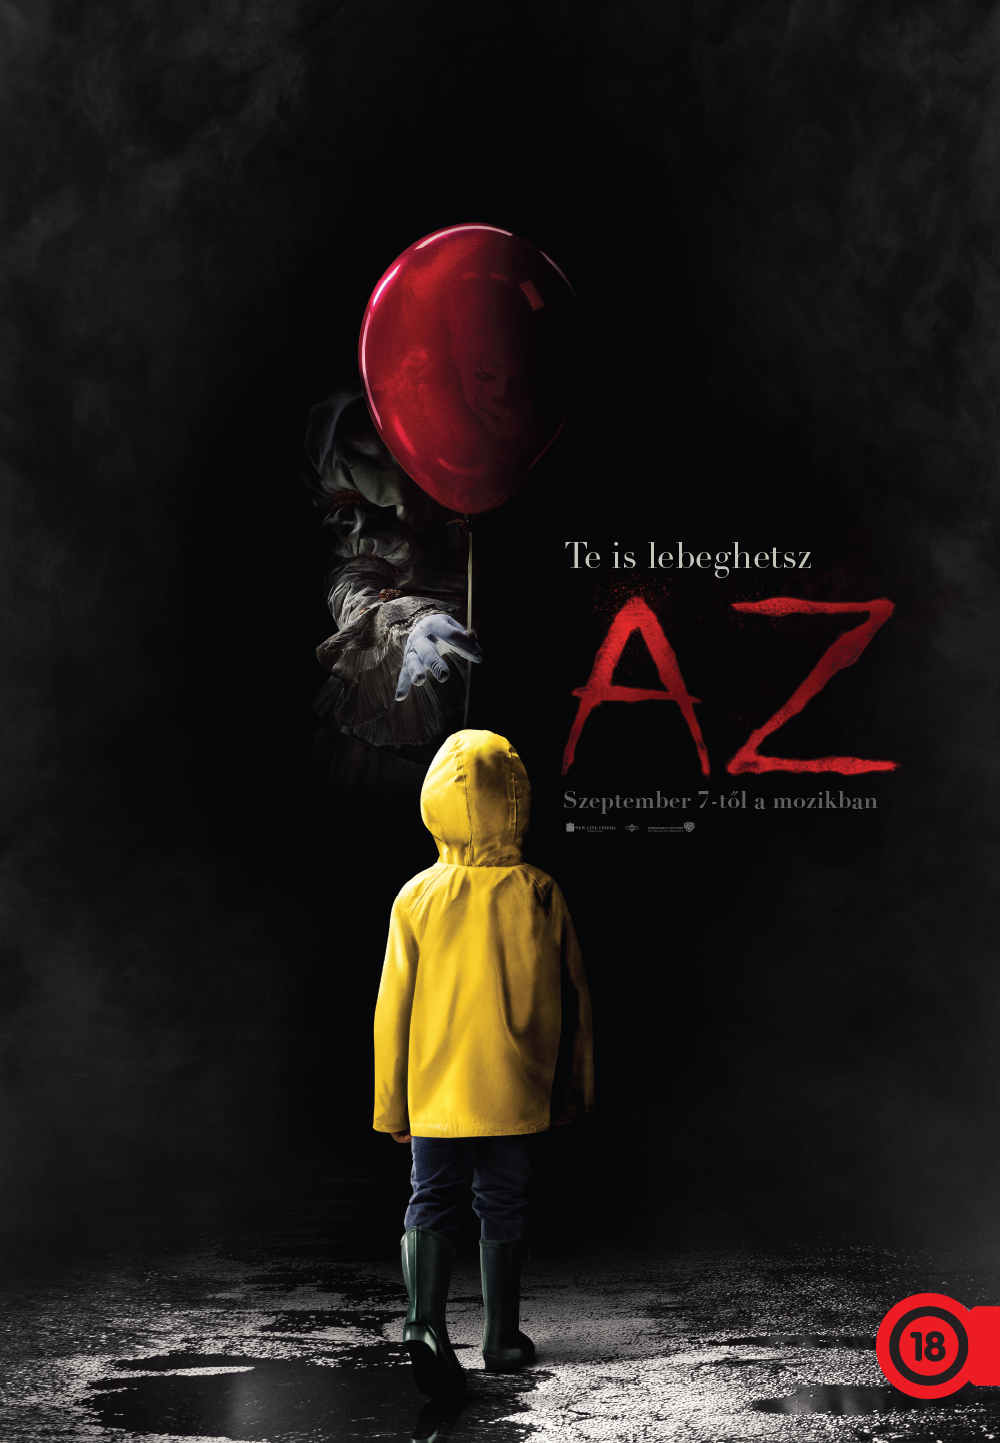 It.2017.1080p.BluRay.Remux.AVC.TrueHD.Atmos.7.1.HuN-Nimphas